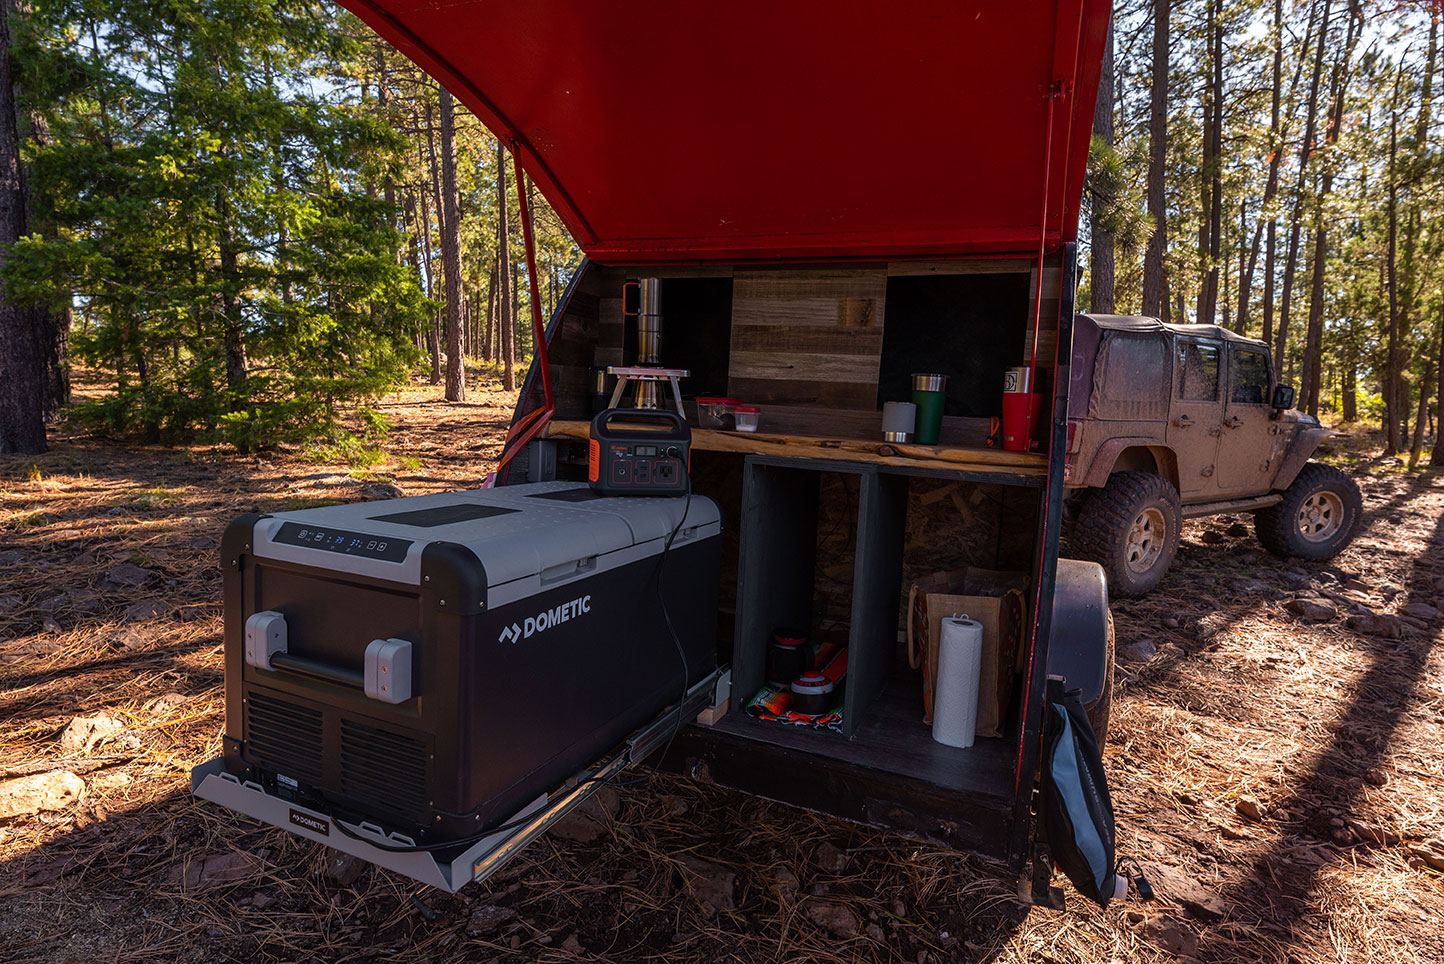 Product Photography, Jackery Portable Power, Dometic,  Adventure, Lifestyle, Product Photographer, Daniel Britton